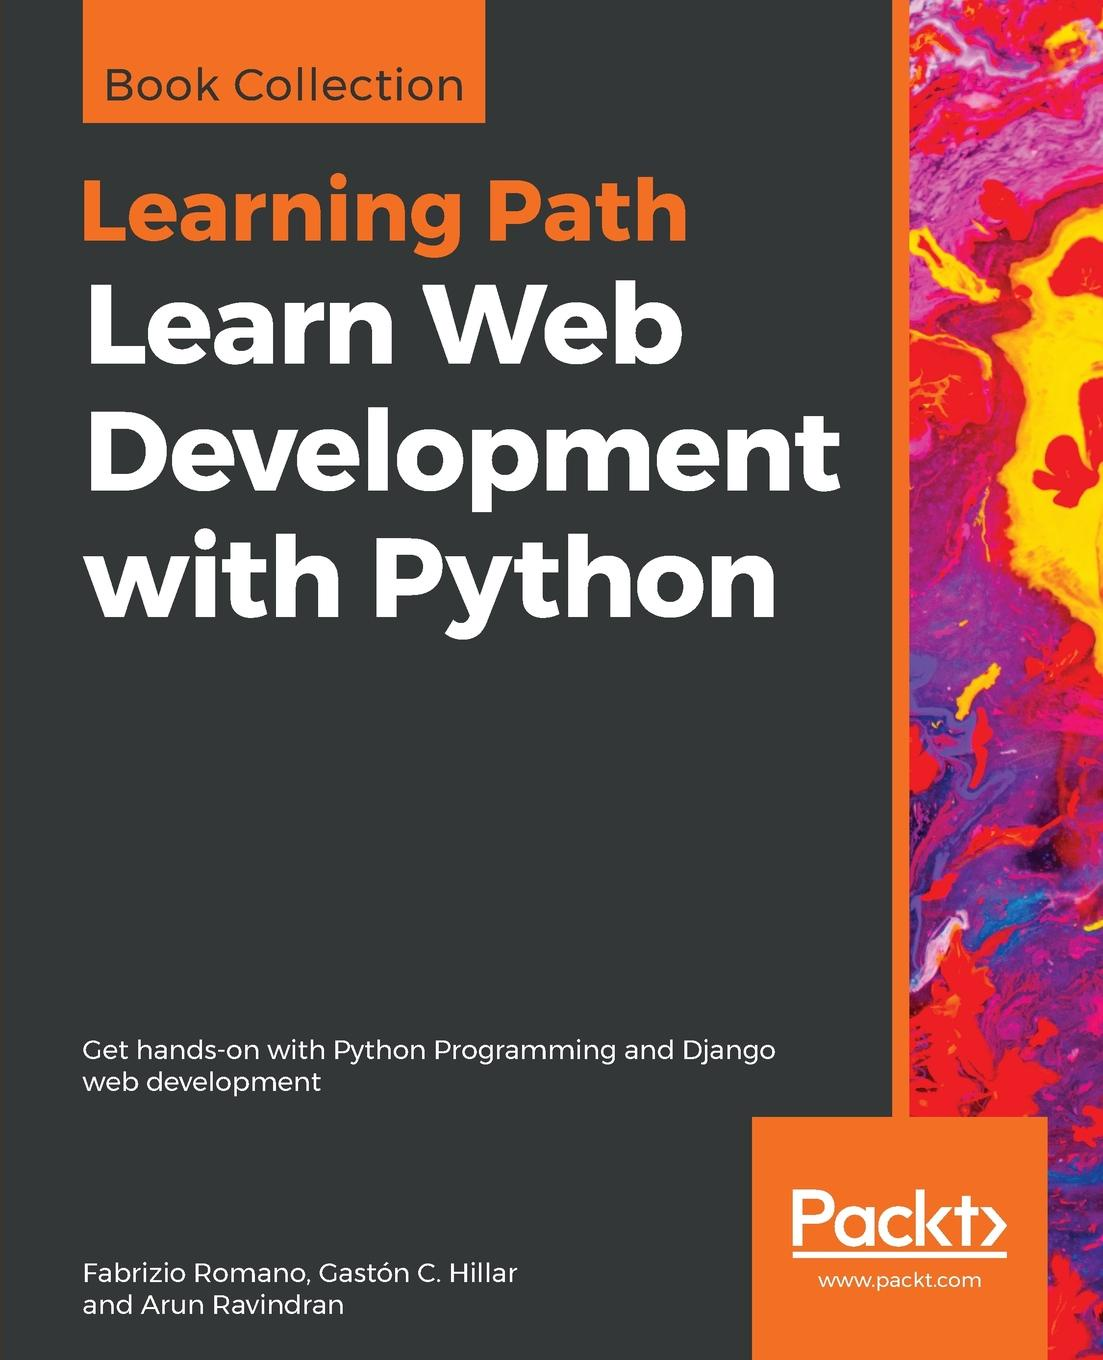 Fabrizio Romano, Gastón C. Hillar, Arun Ravindran Learn Web Development with Python gastón hillar c professional parallel programming with c master parallel extensions with net 4